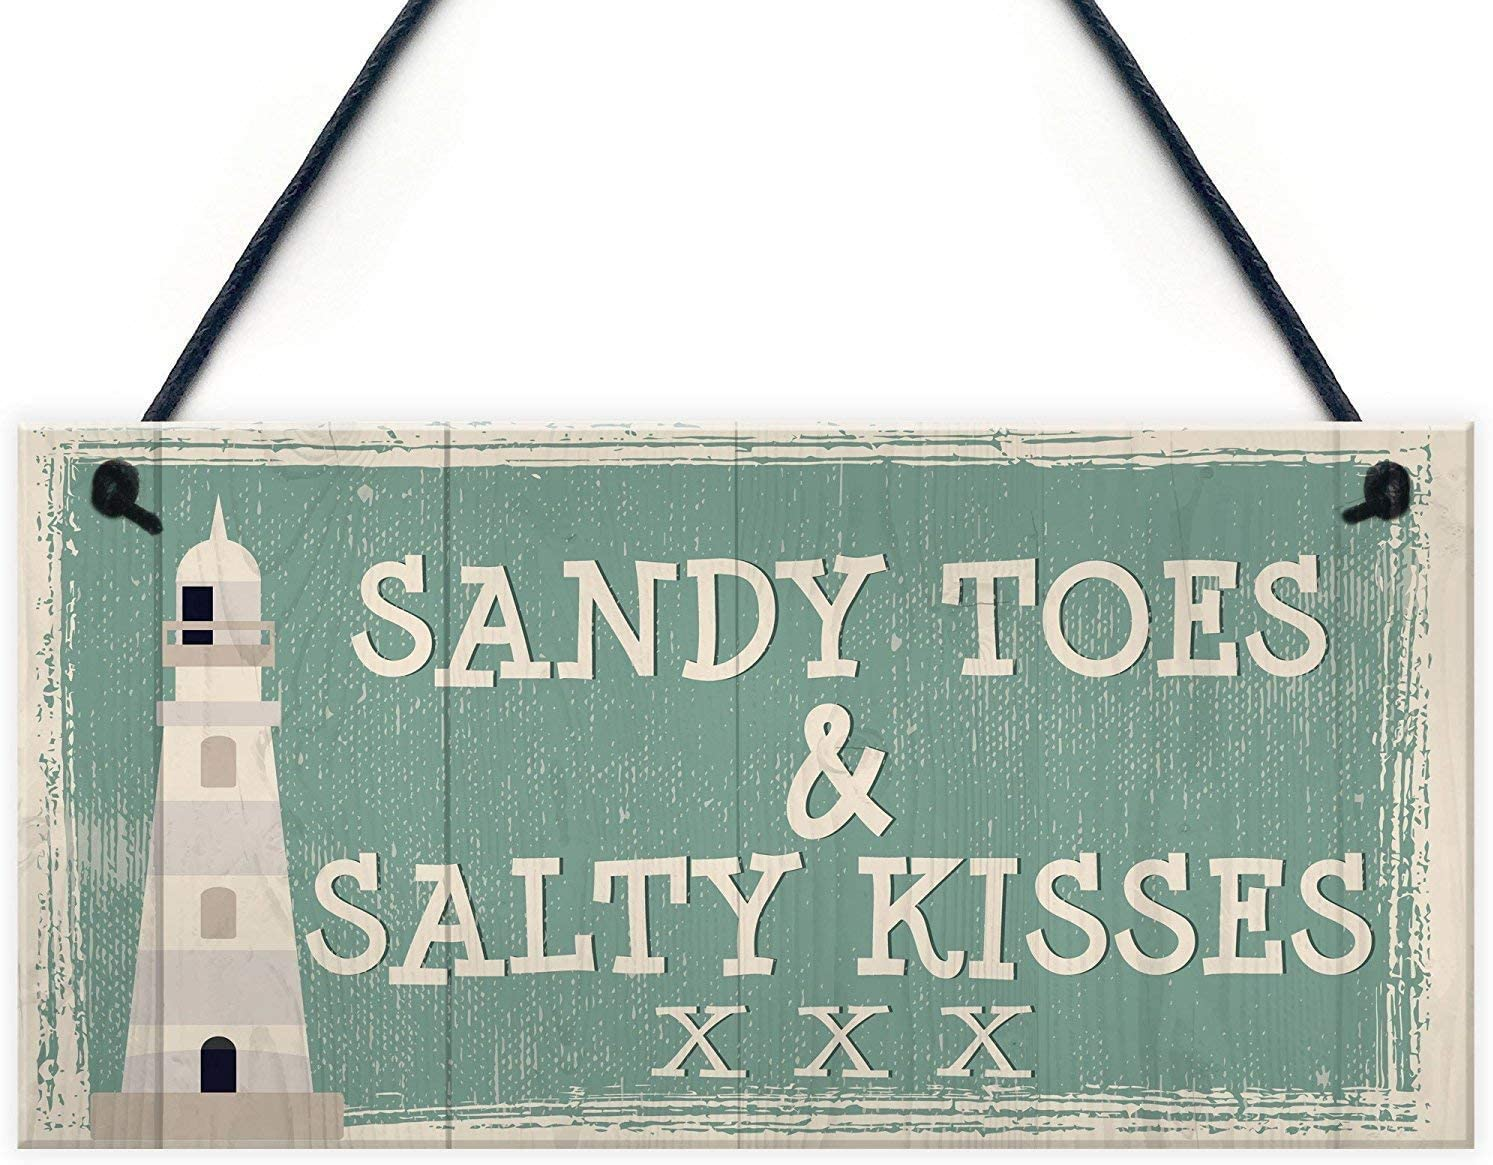 INNAPER Sandy Toes and Salty Kisses Shabby Chic Seaside Sand Lighthouse Nautical Themed Wood Plaque Signs Home Decor Gifts 12x6(49BW1917)